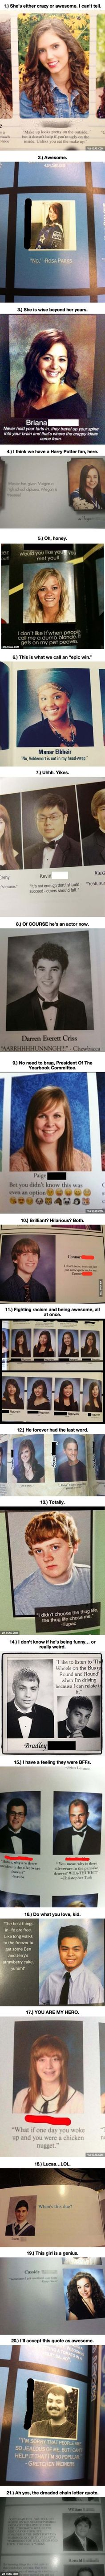 These 21 Students Left Totally Brilliant Quotes In Their Yearbooks. No One Will Forget Them! - 9GAG